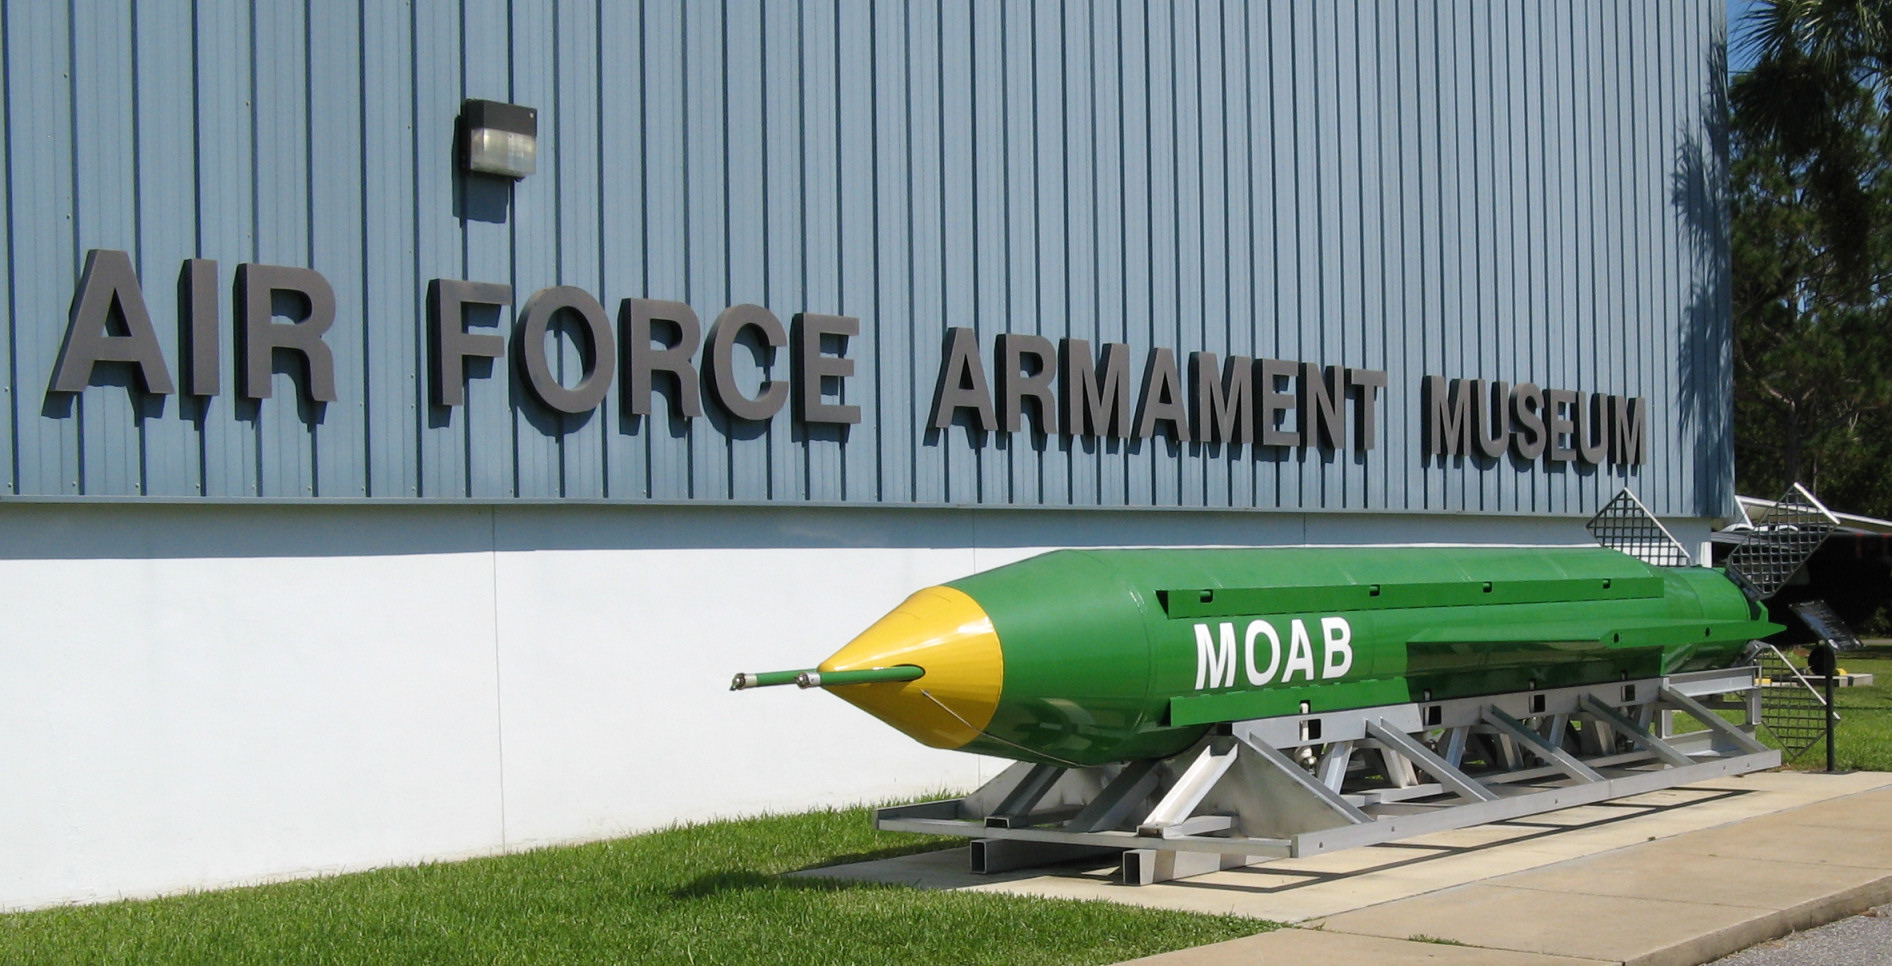 The Air Force Armament Museum in Florida displays an incredibly diverse array of weaponry, including the AMRAAM, the newest air-to-air missile. Photo by Greg Goebel via Wikipedia.